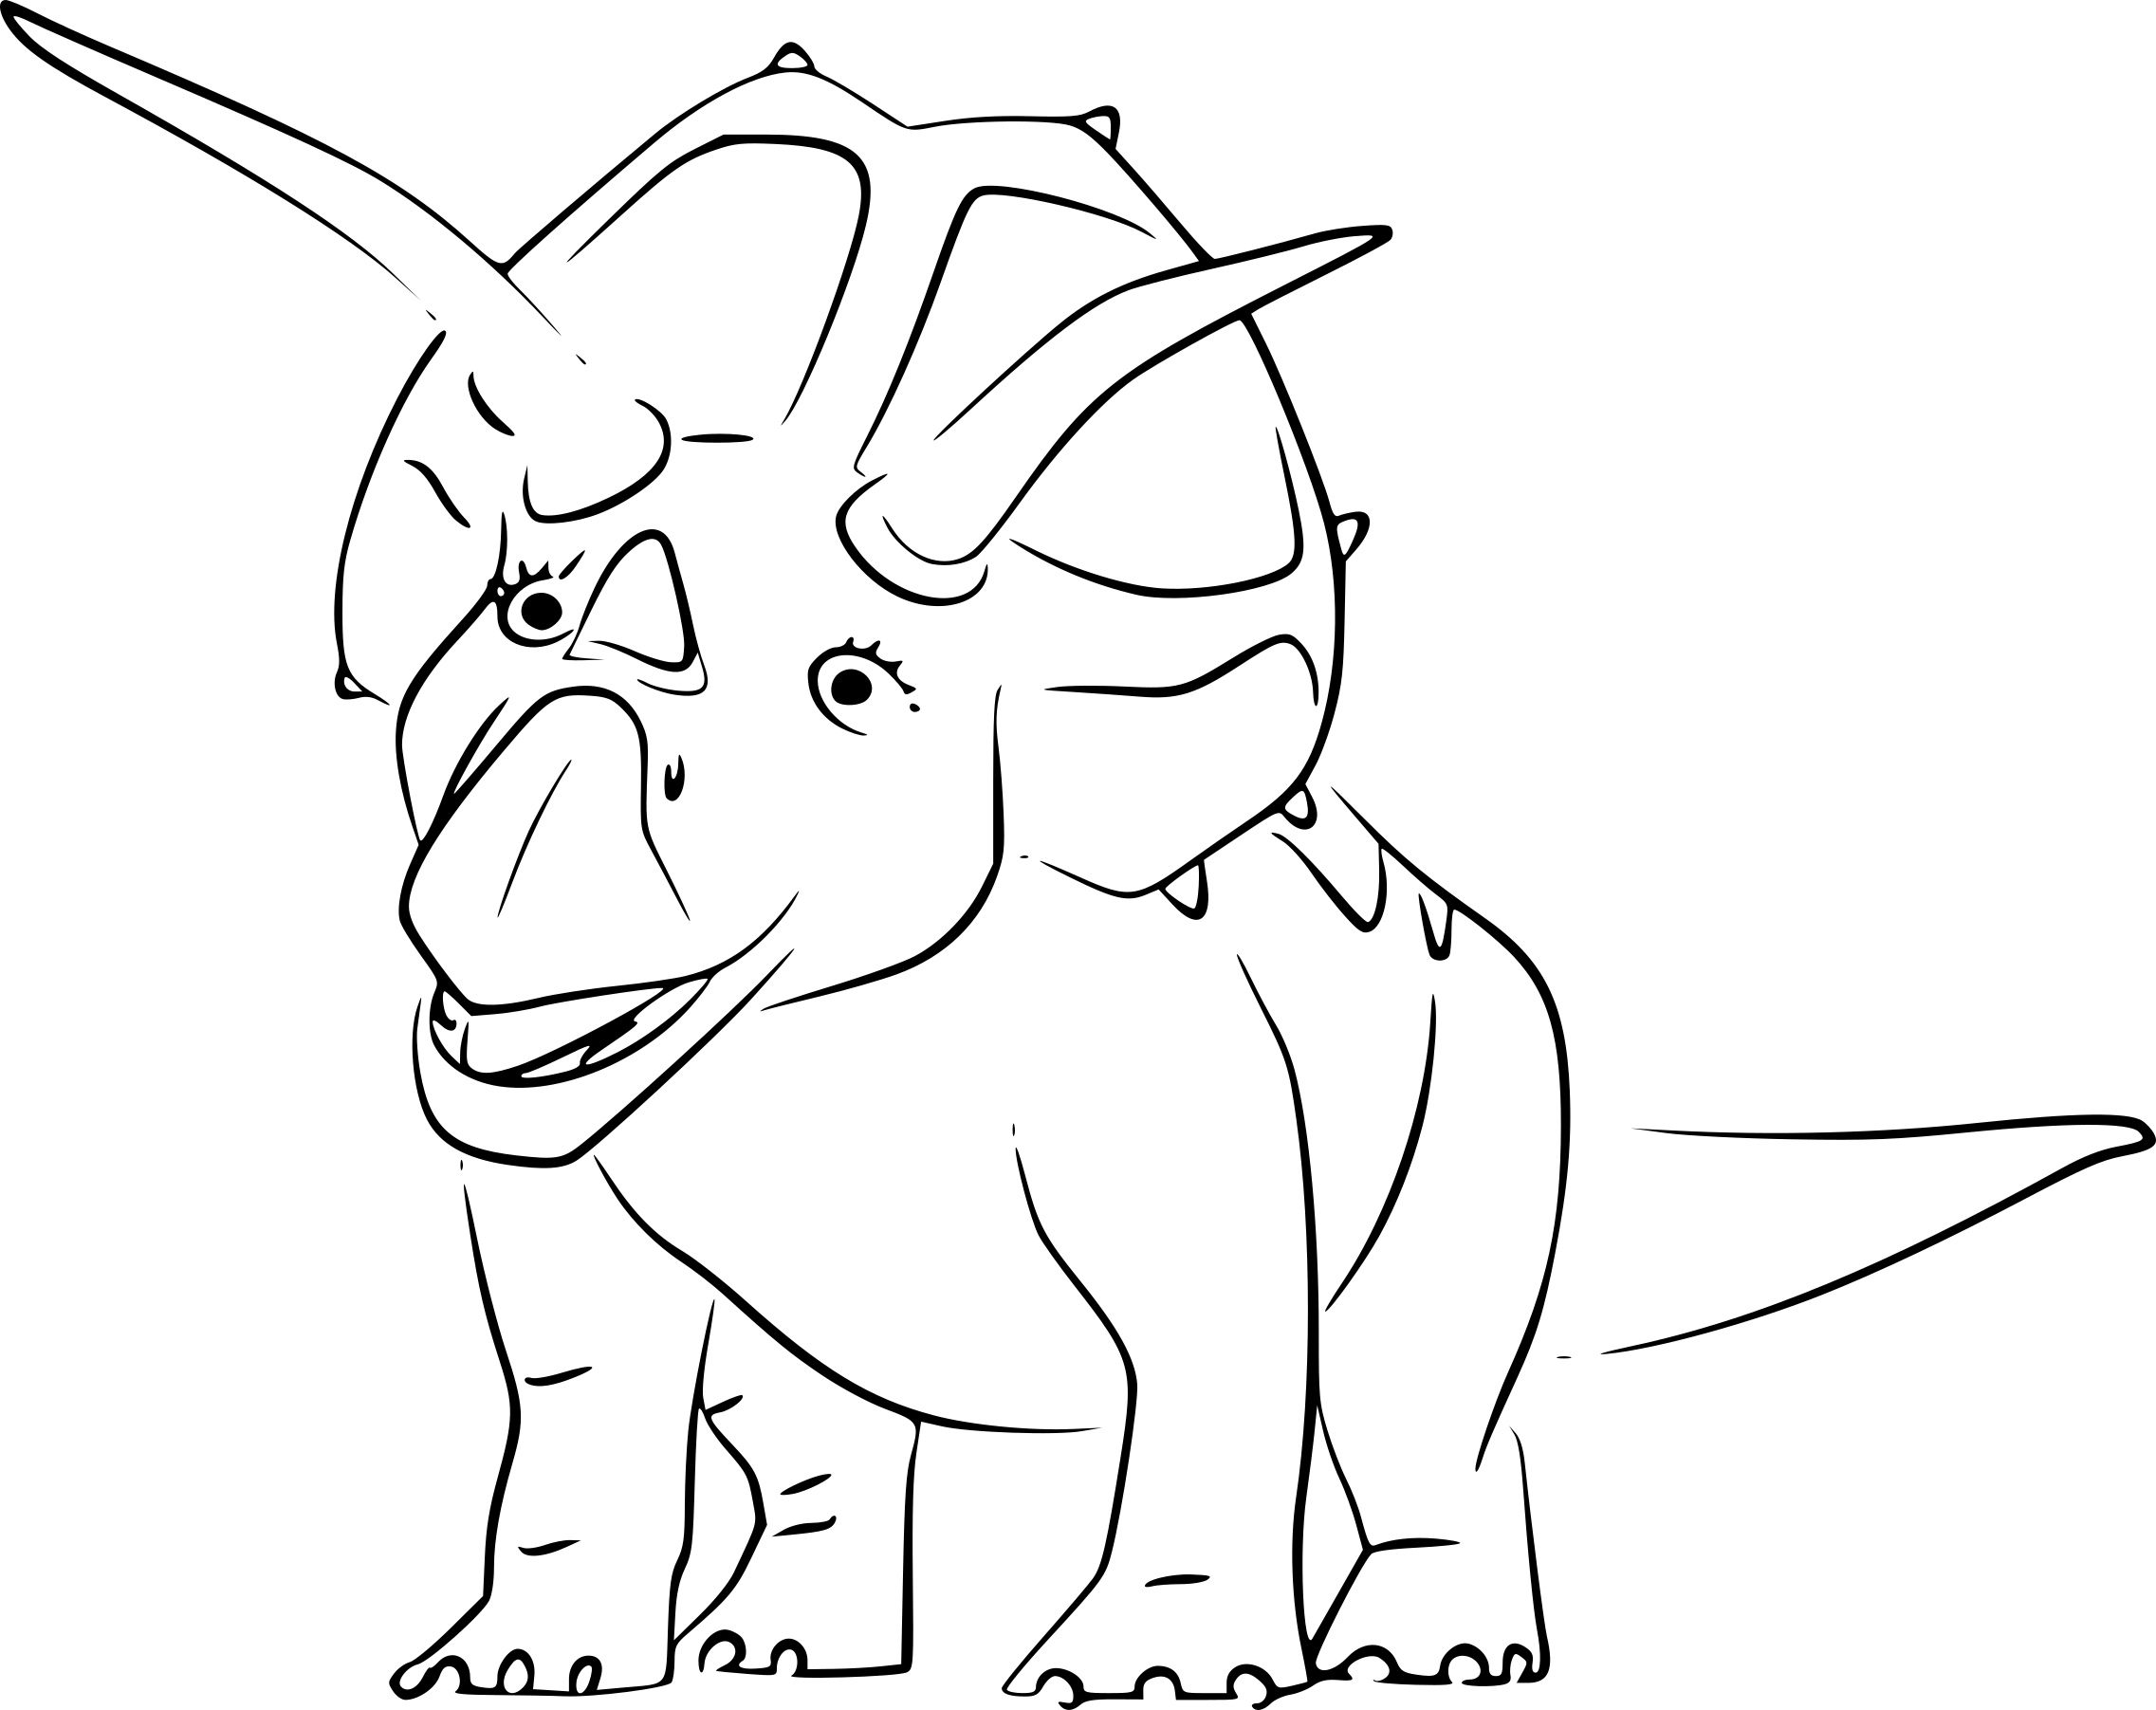 Coloriage Triceratops dinosaure